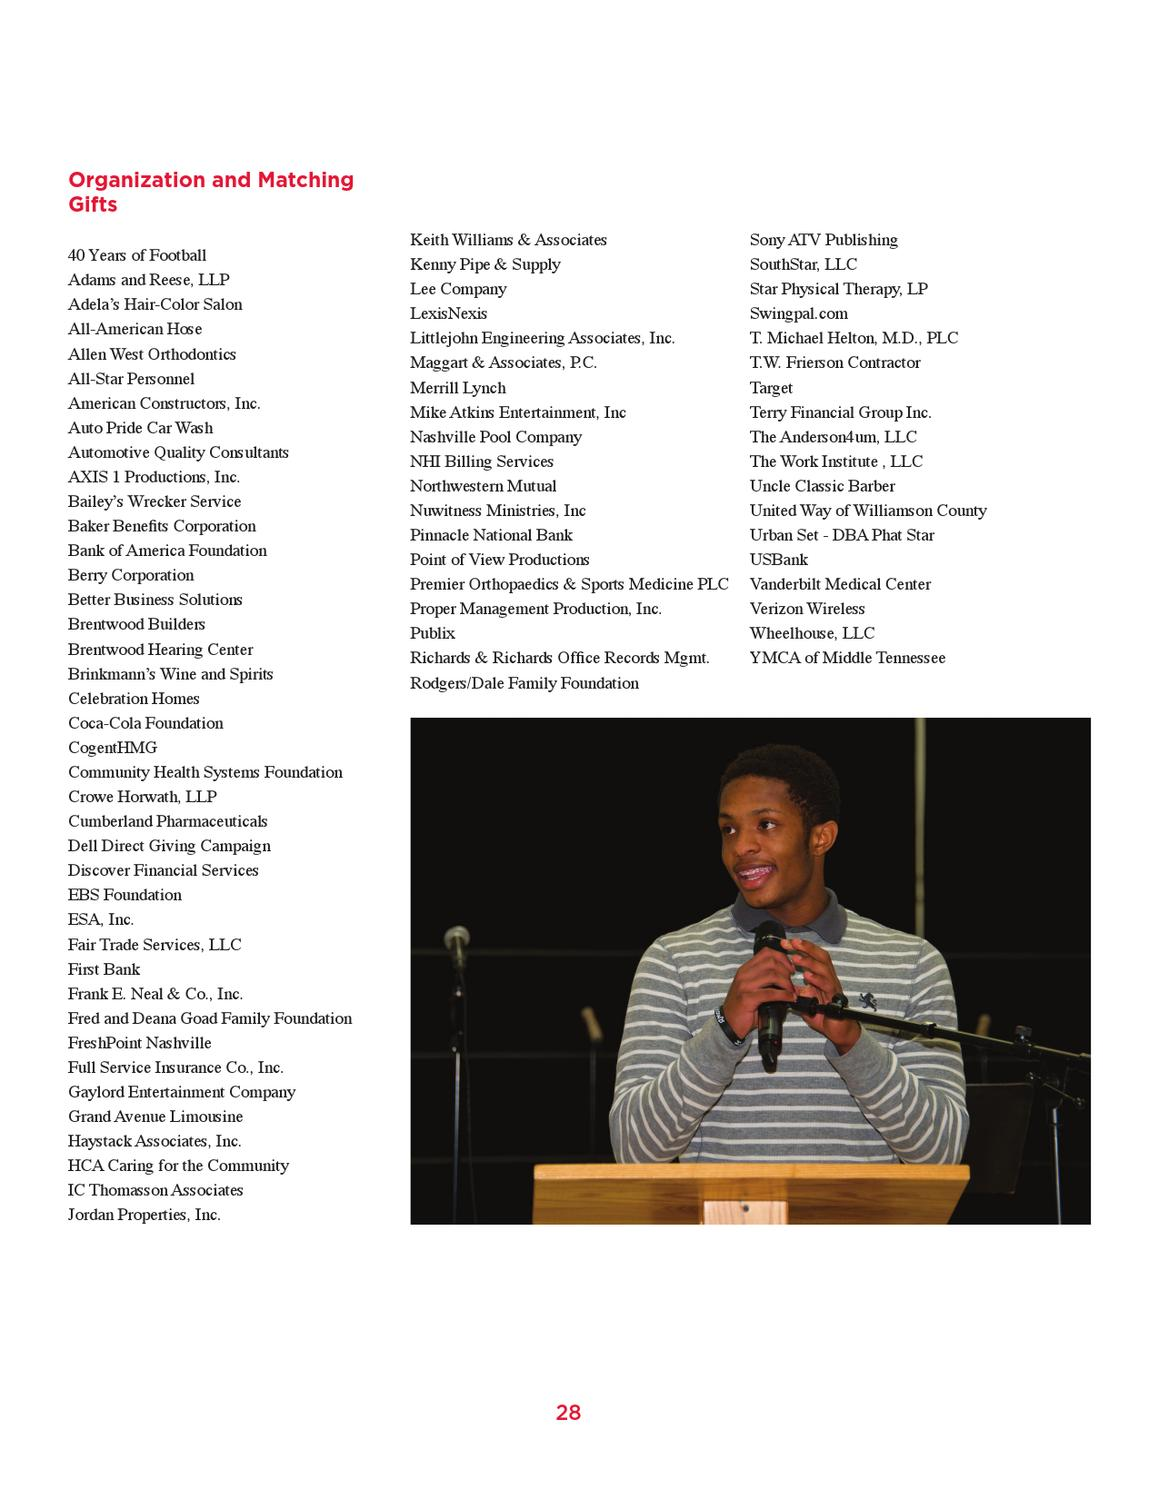 2011-2012 Annual Report by Brentwood Academy - issuu